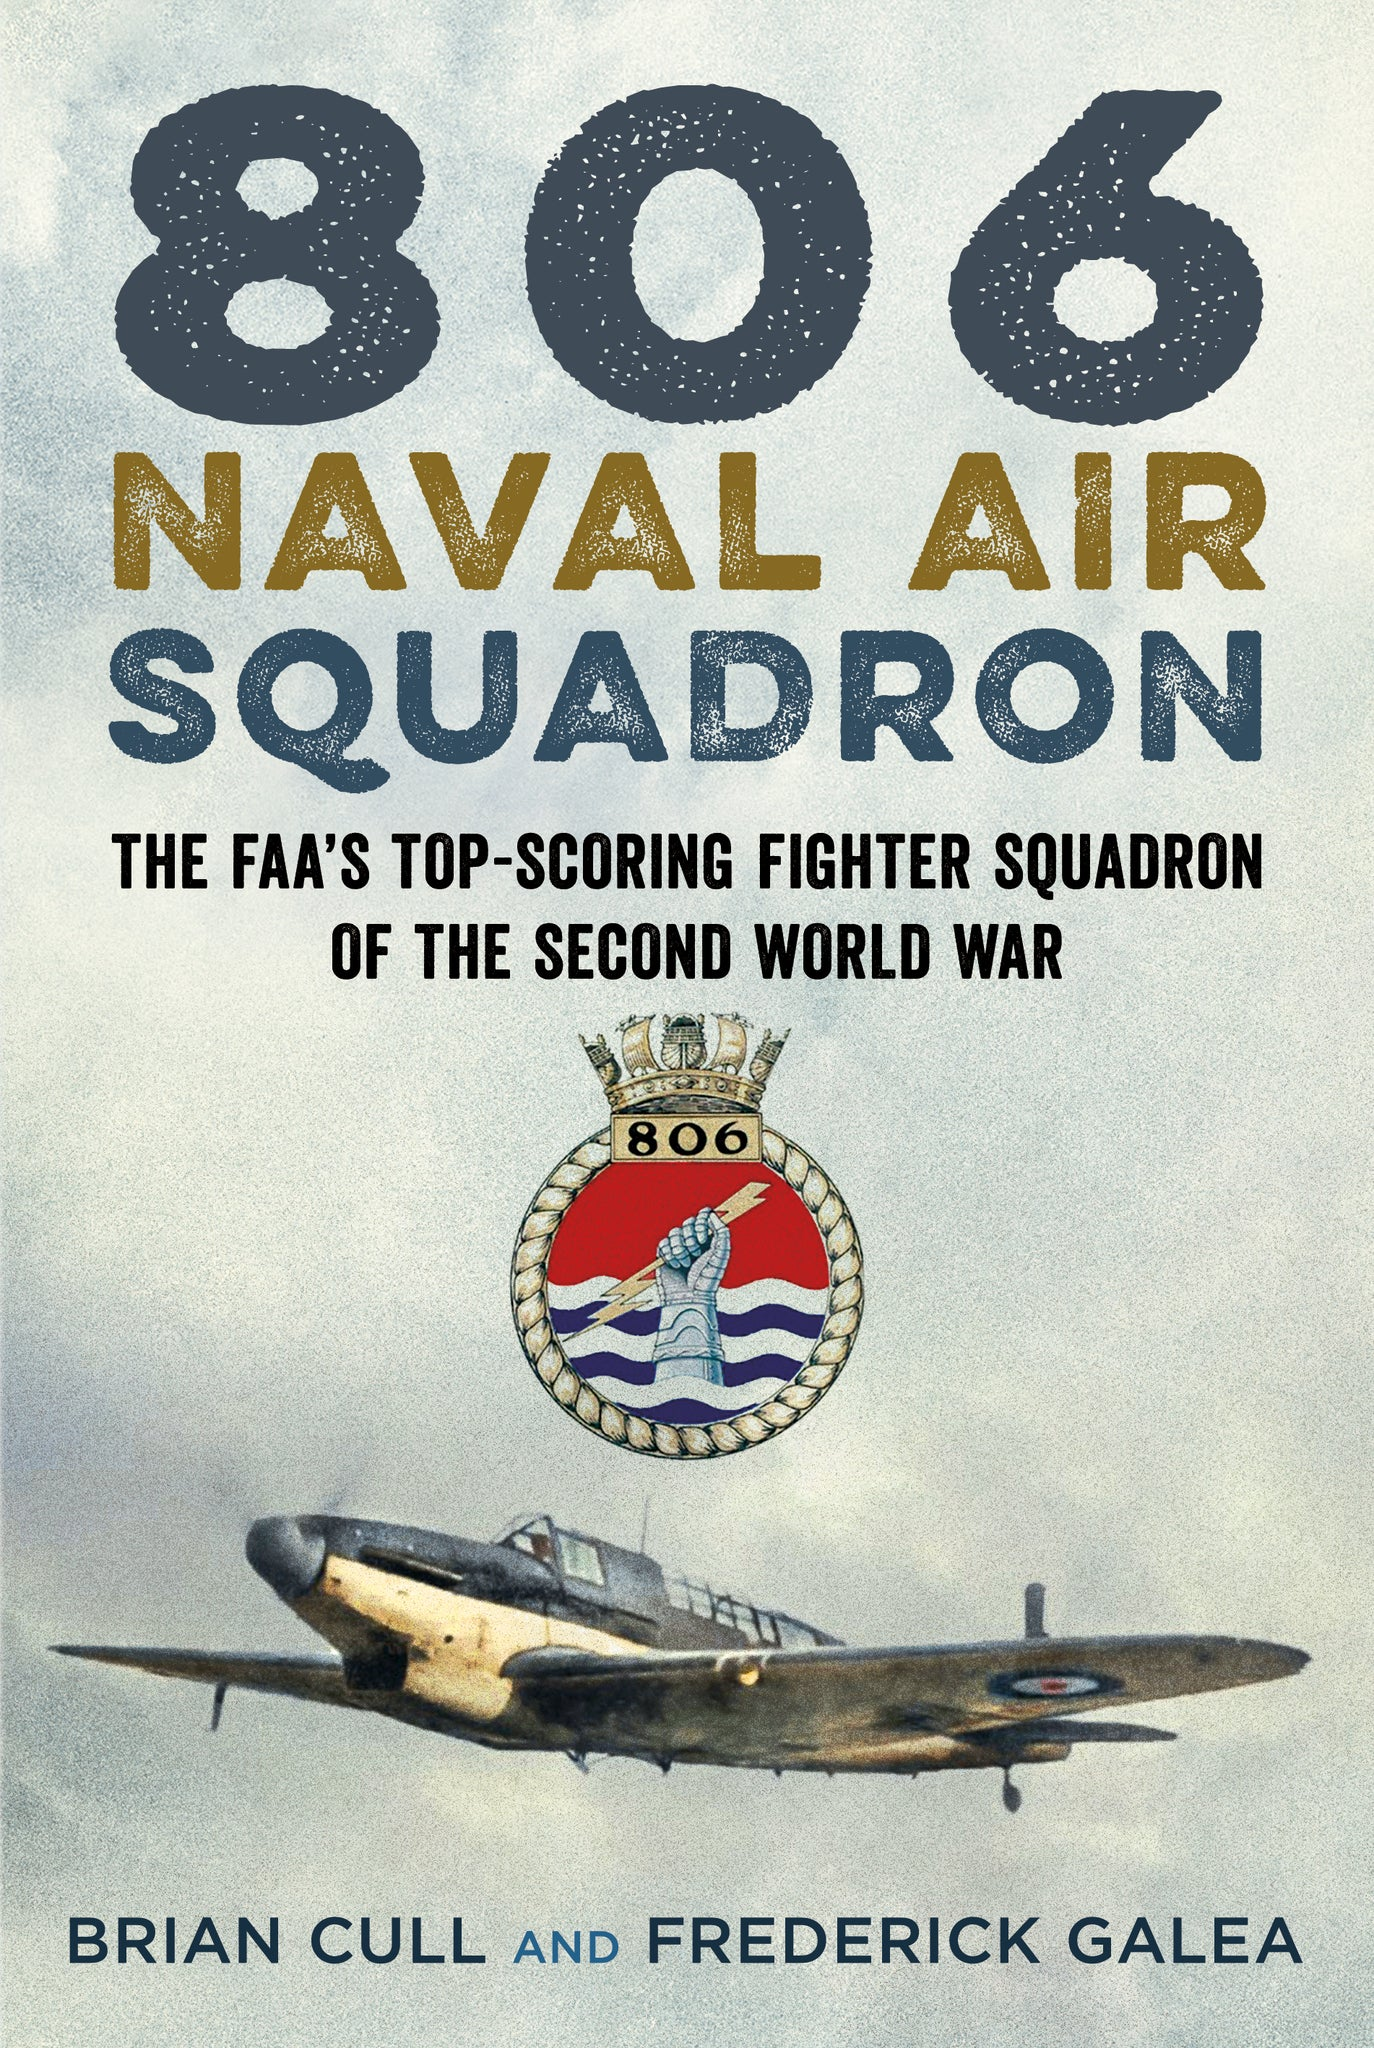 806 Naval Air Squadron: The FAA's Top-Scoring Fighter Squadron of the Second World War